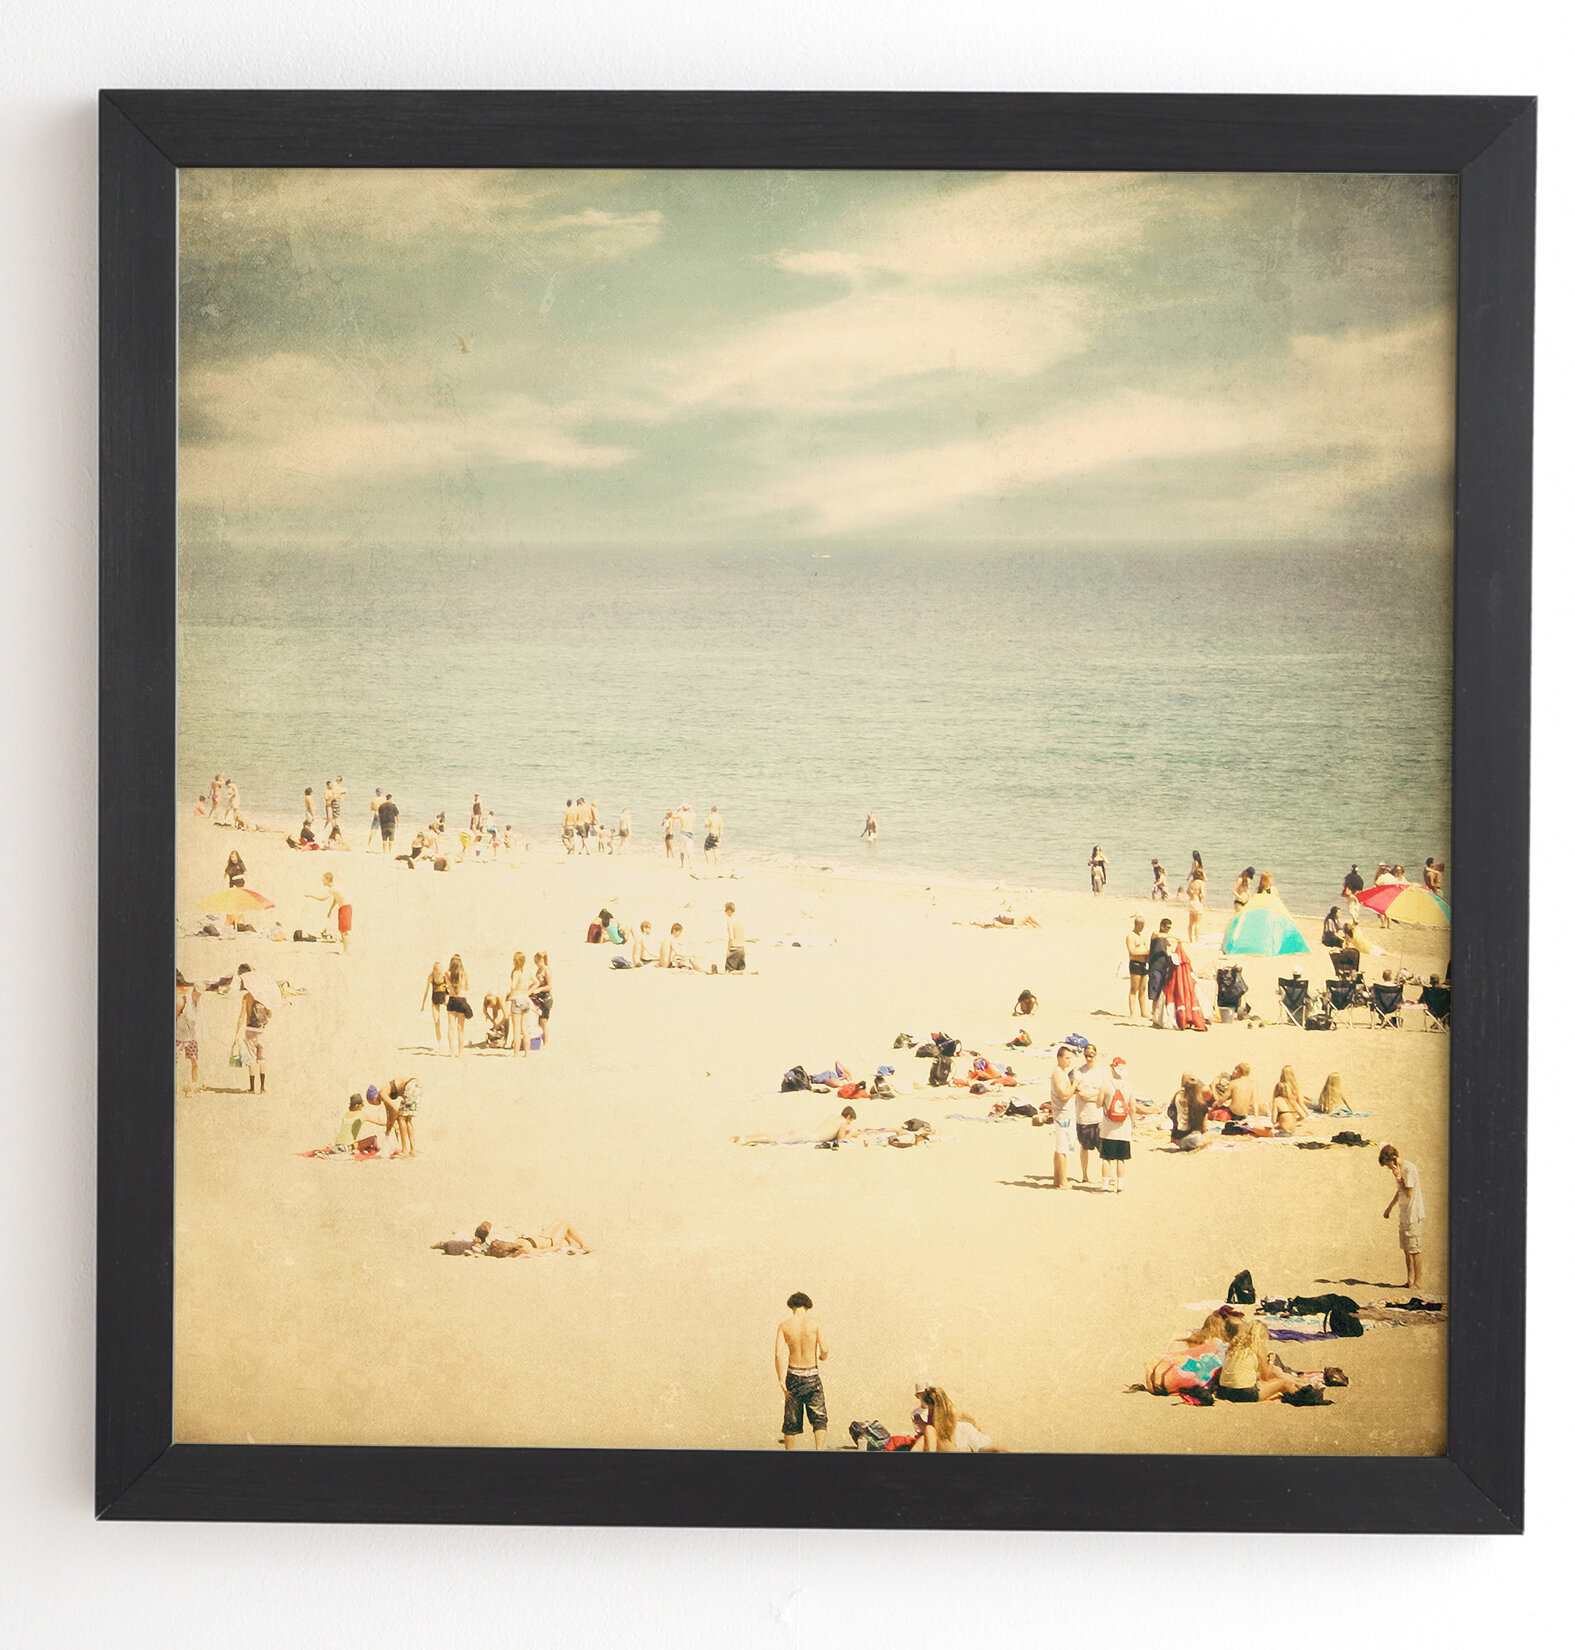 East Urban Home Vintage Beach Picture Frame Graphic Art Print On Wood Reviews Wayfair